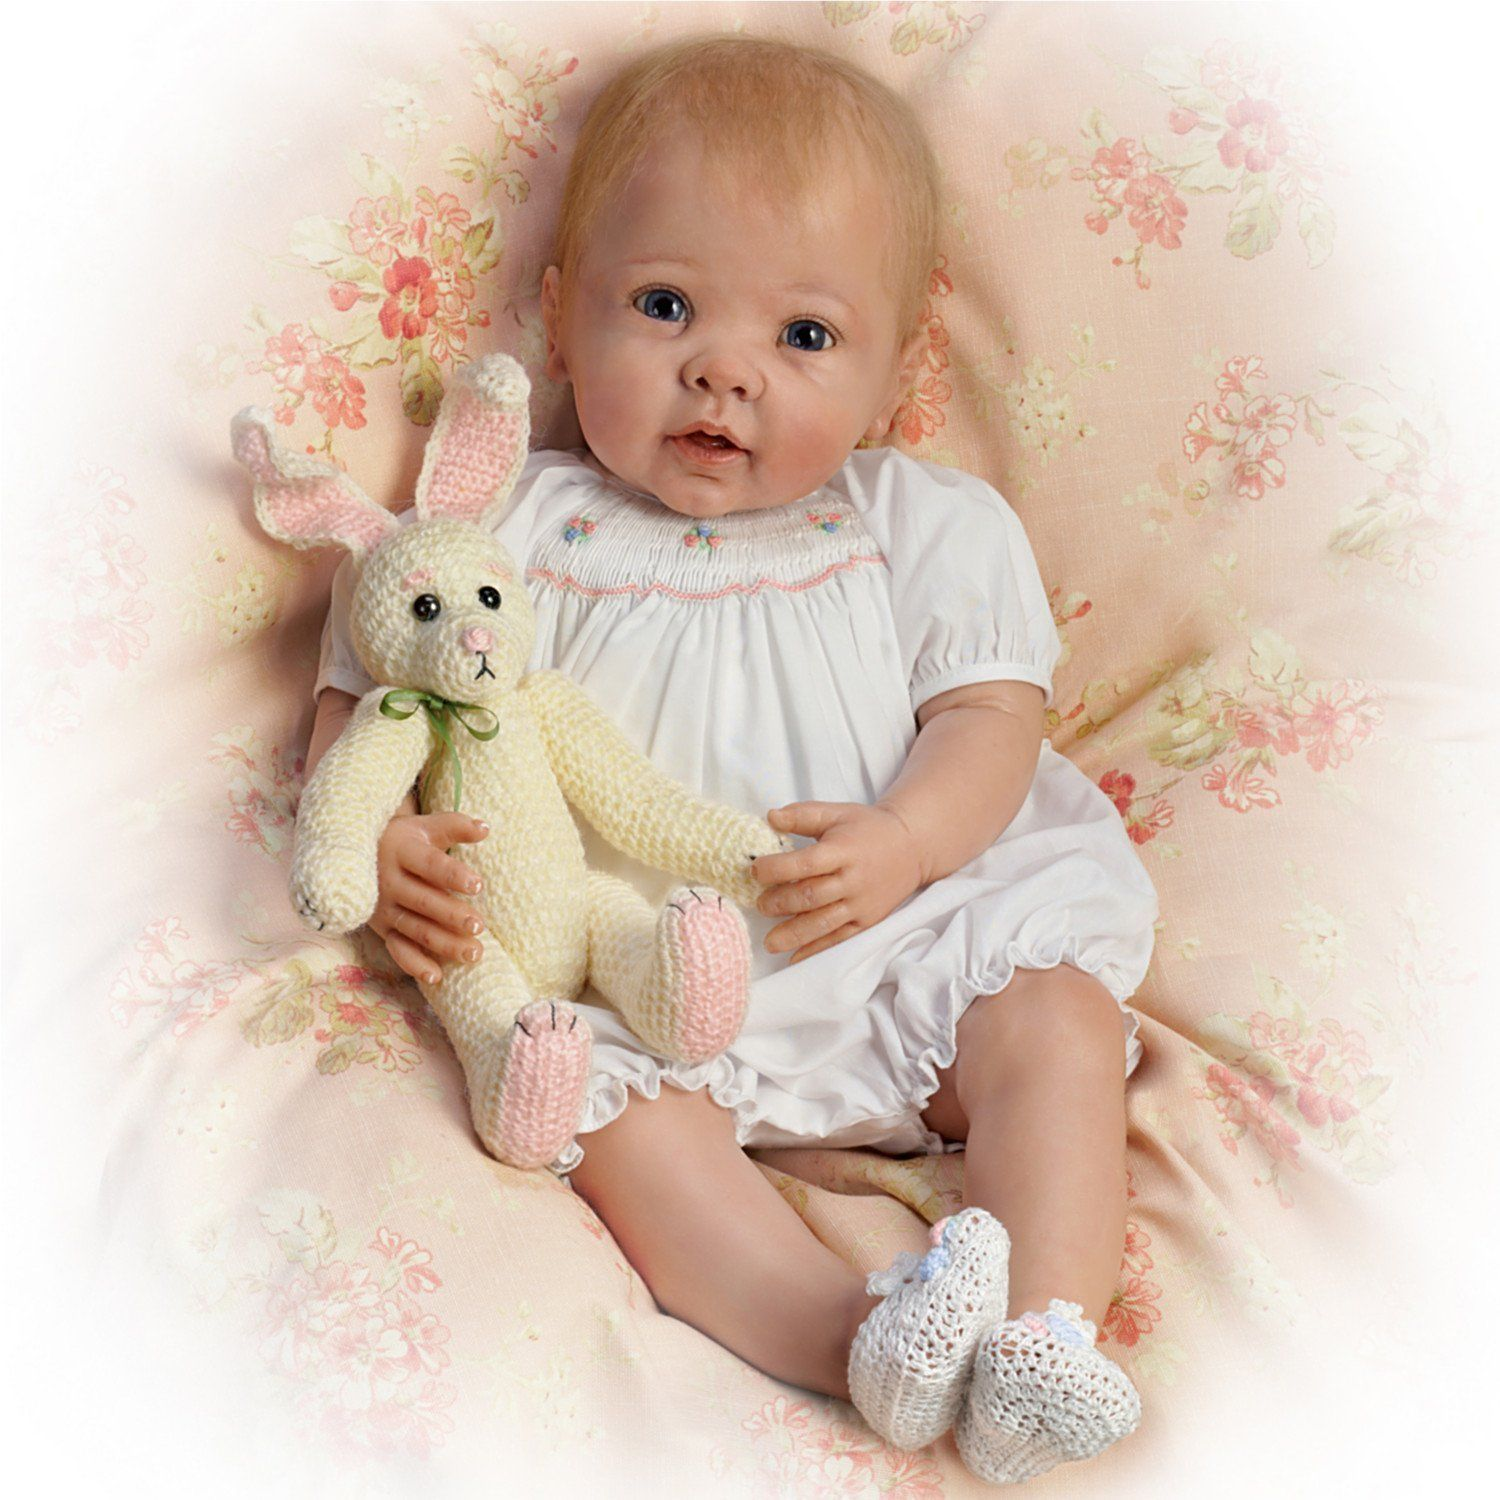 Elizabeth Weighted /& Poseable Baby Doll by Ashton Drake New NRFB